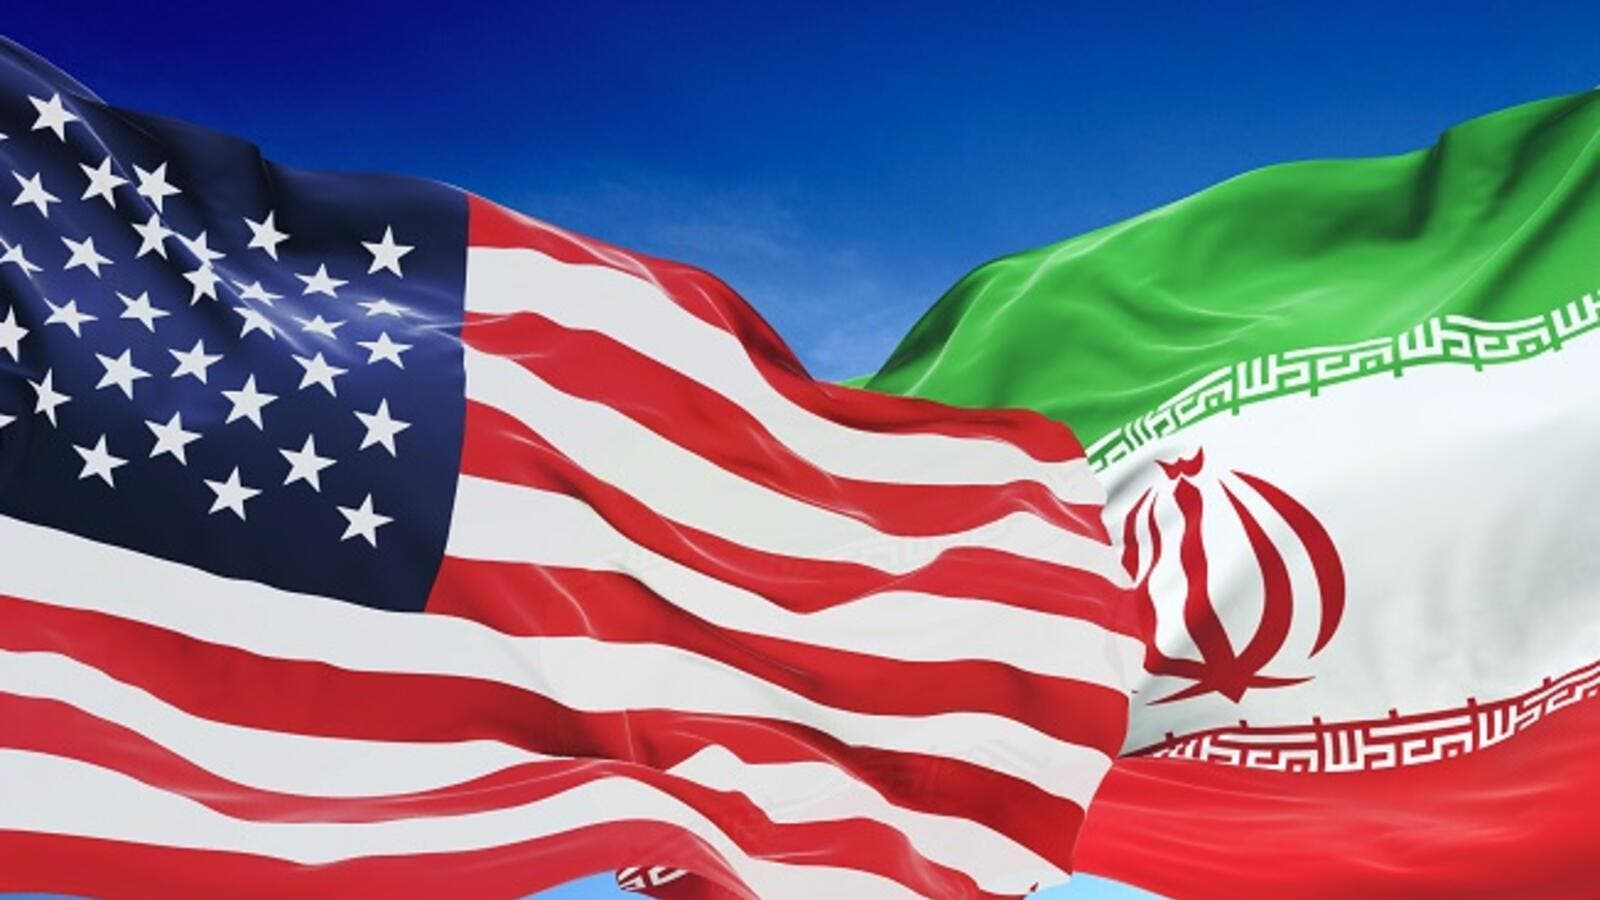 Iran is among the countries which the US is courting for stepped-up sales of the oilseed. (Shutterstock)